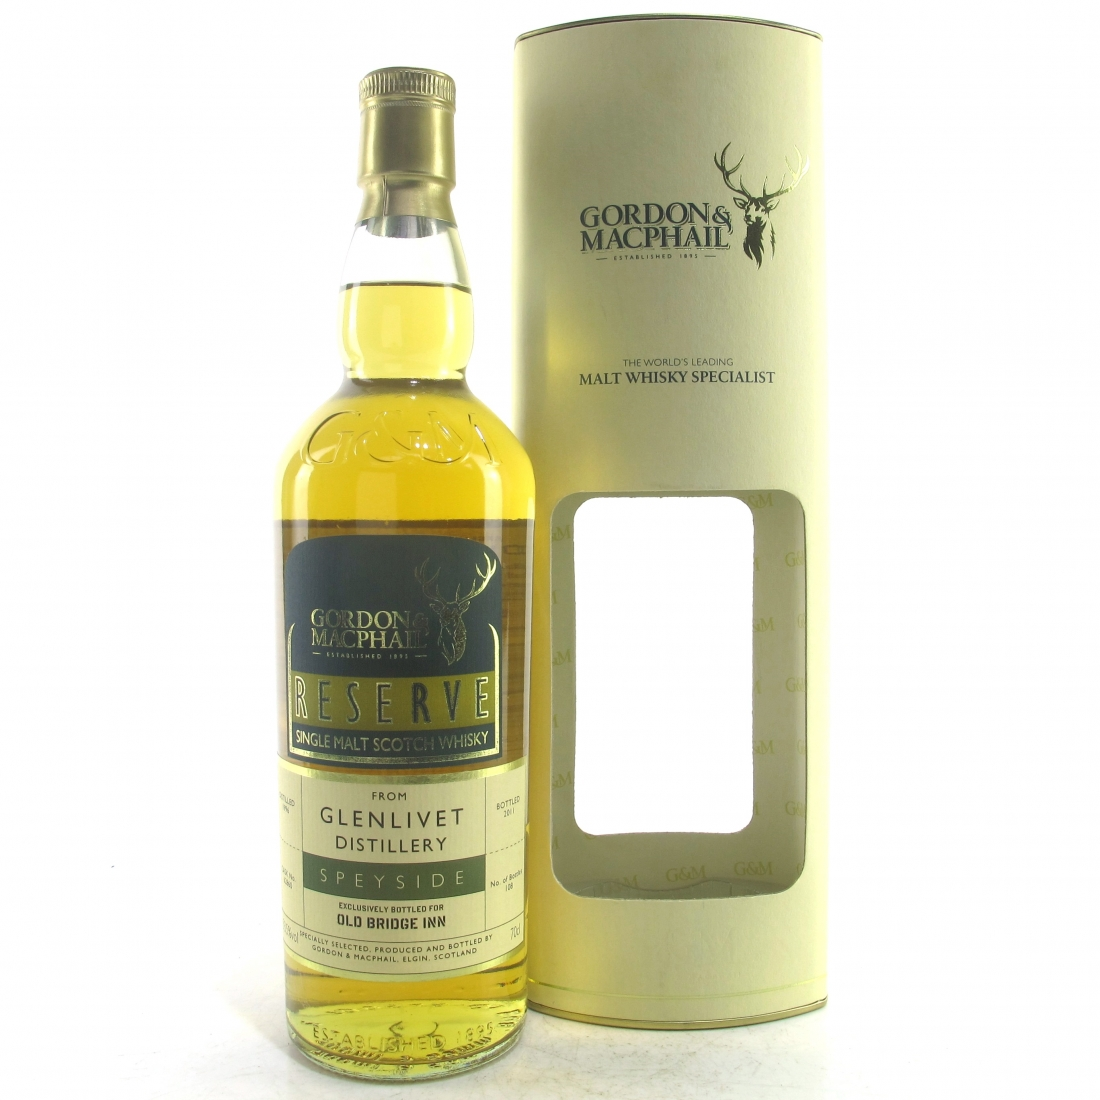 Glenlivet 1996 Gordon and MacPhail / Old Bridge Inn